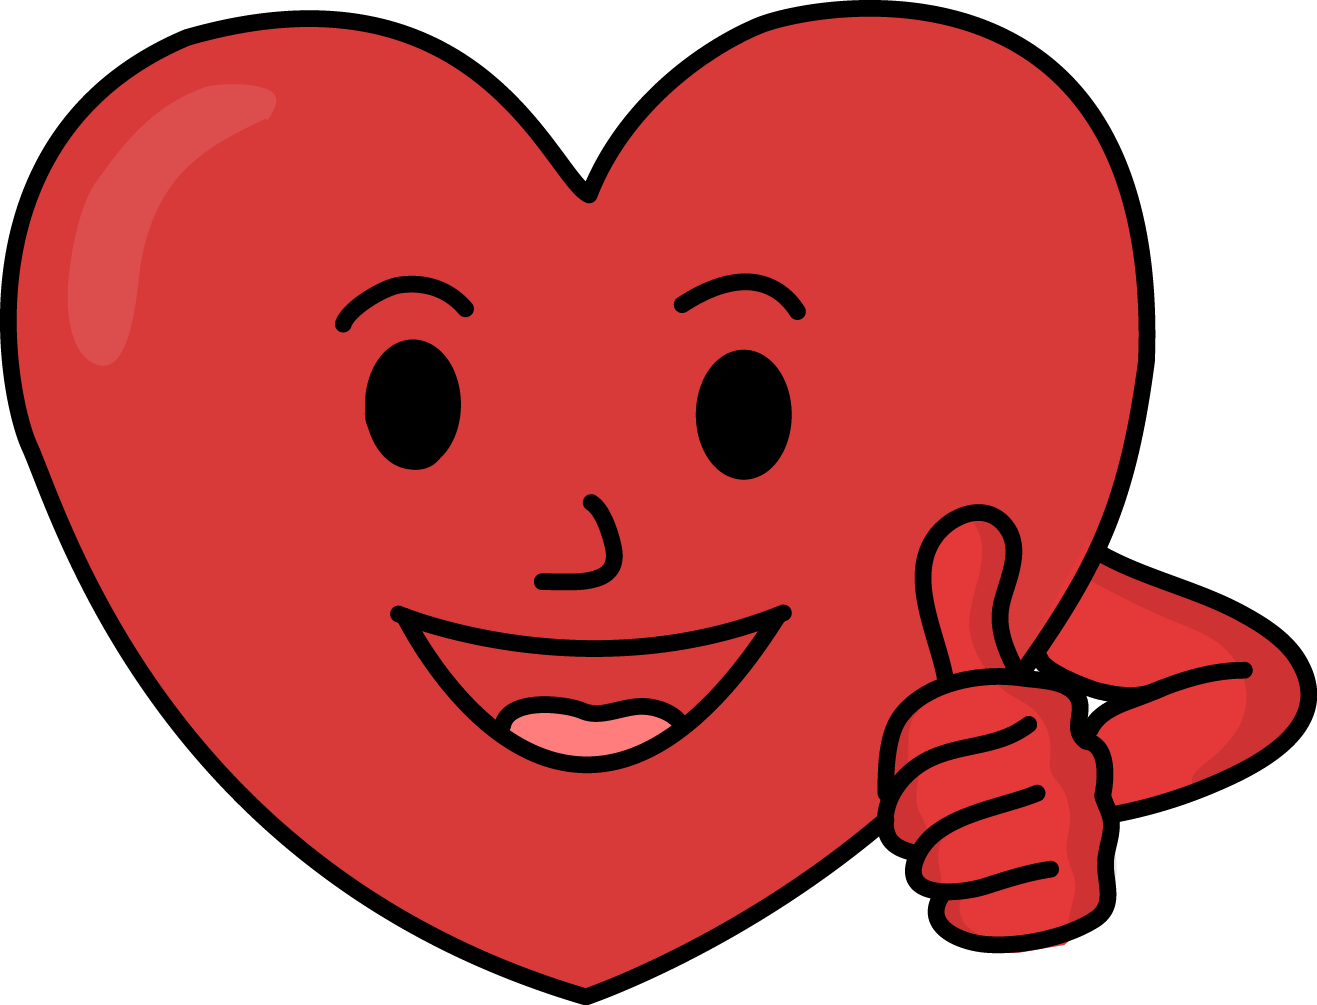 vector free download Strong clipart. Image for free heart